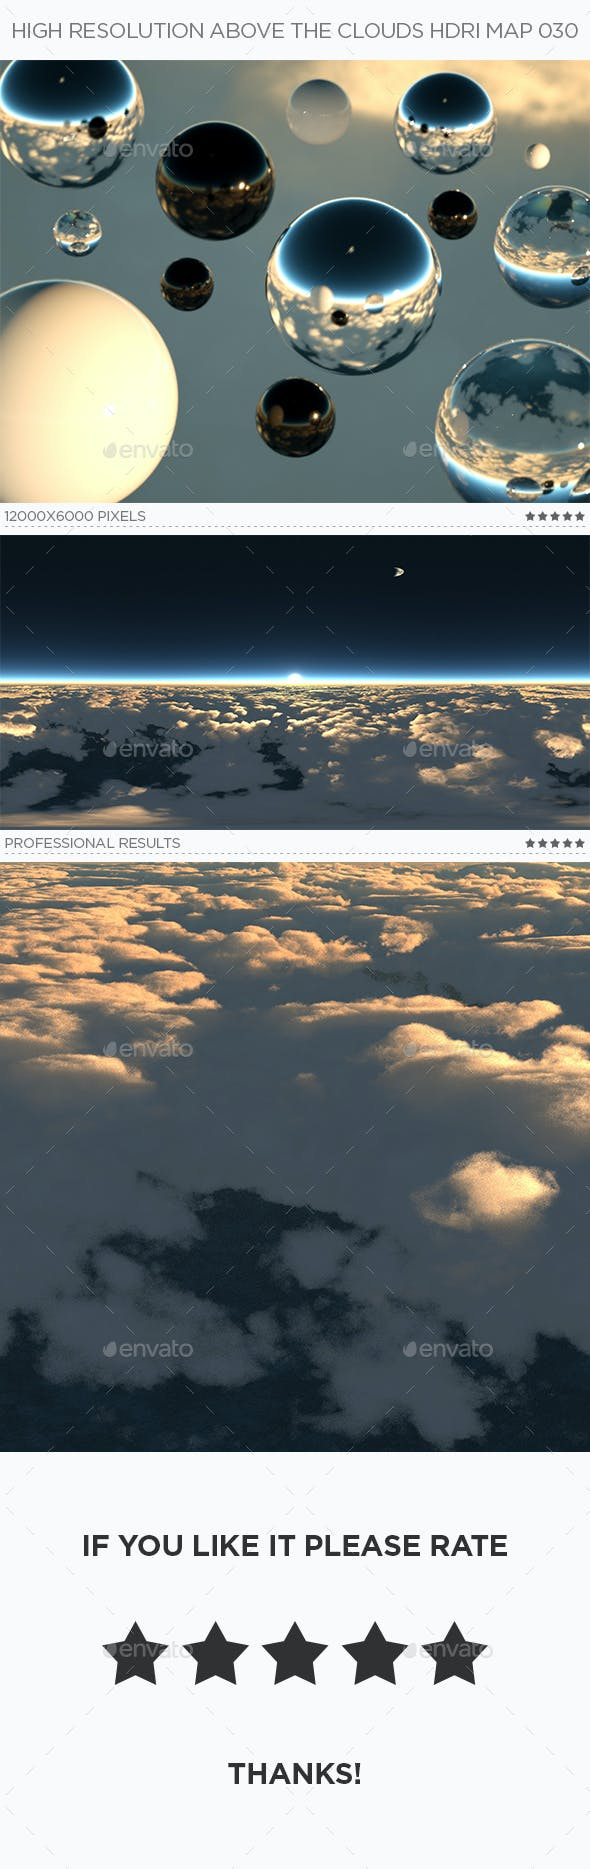 High Resolution Above The Clouds HDRi Map 030 - 3DOcean Item for Sale